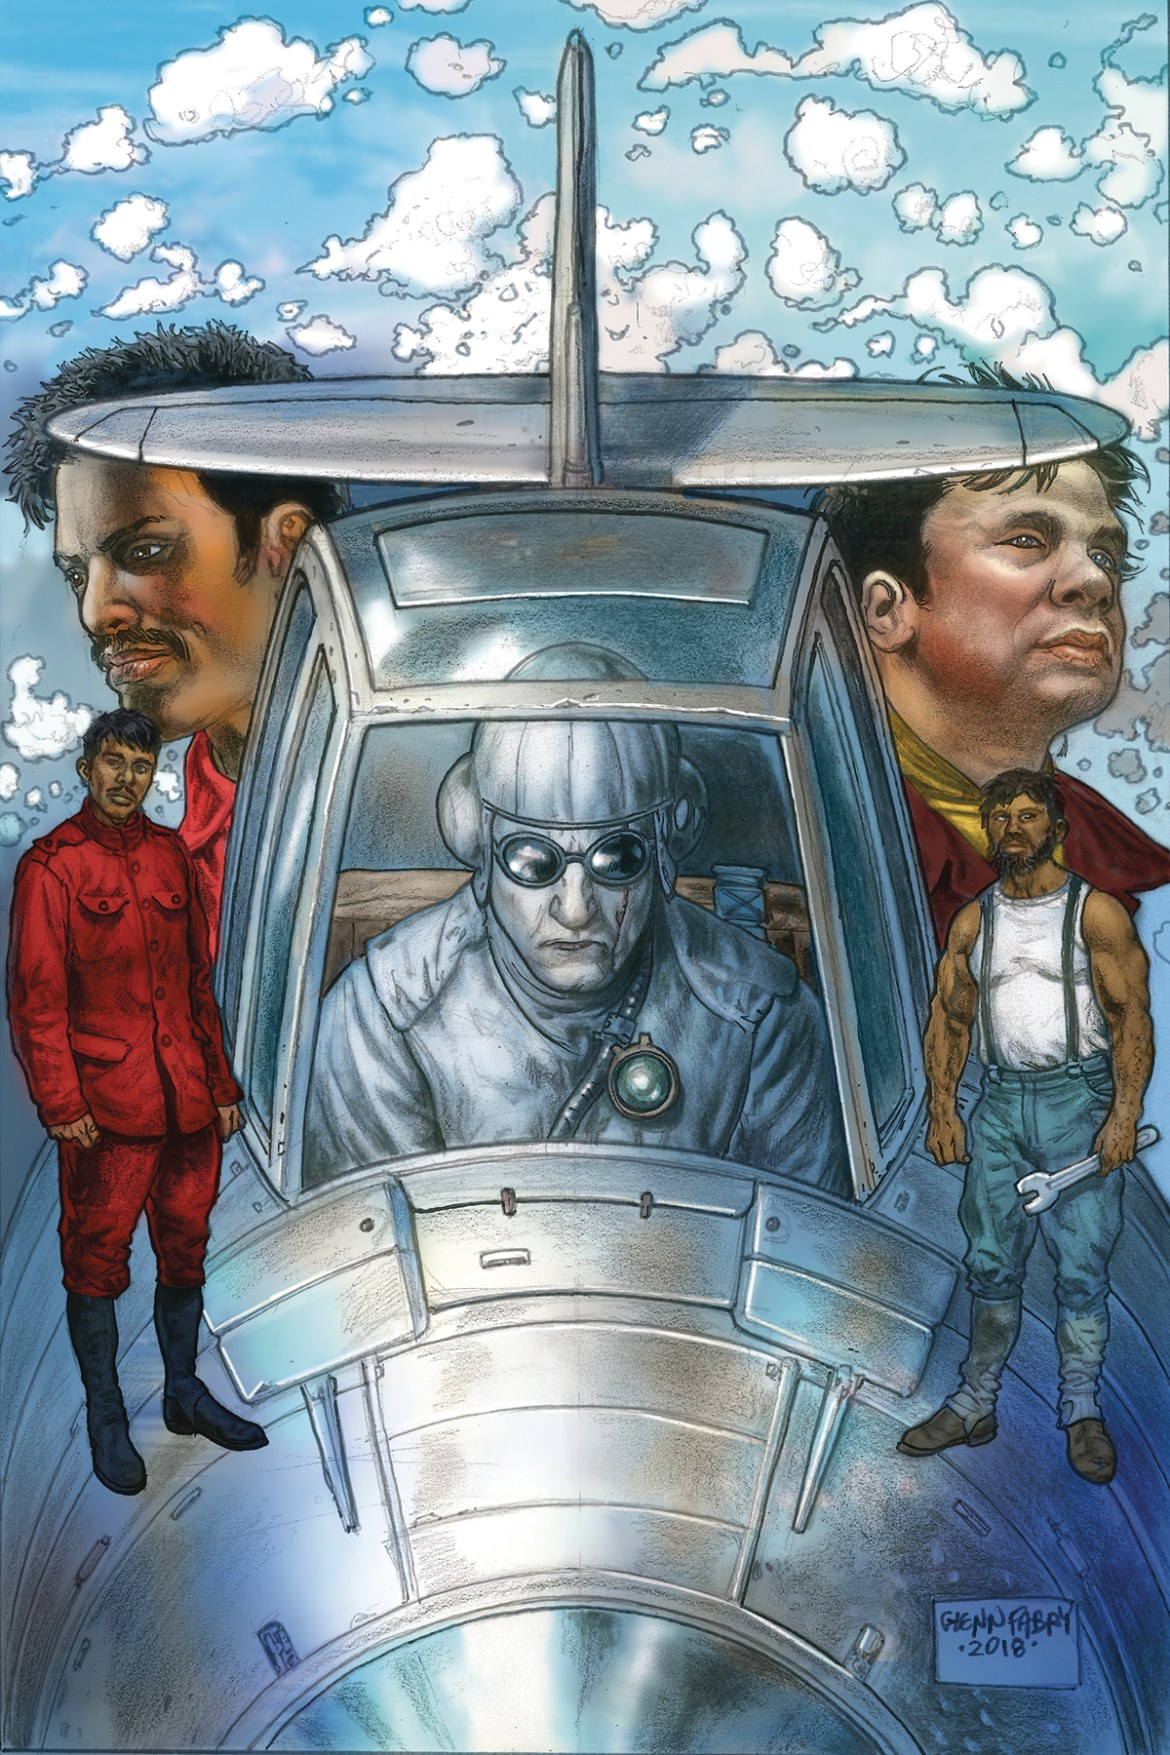 742185_823f1acb2decb4e2d21c1dea5455fc11db59e16f ComicList: Dark Horse Comics New Releases for 04/03/2019